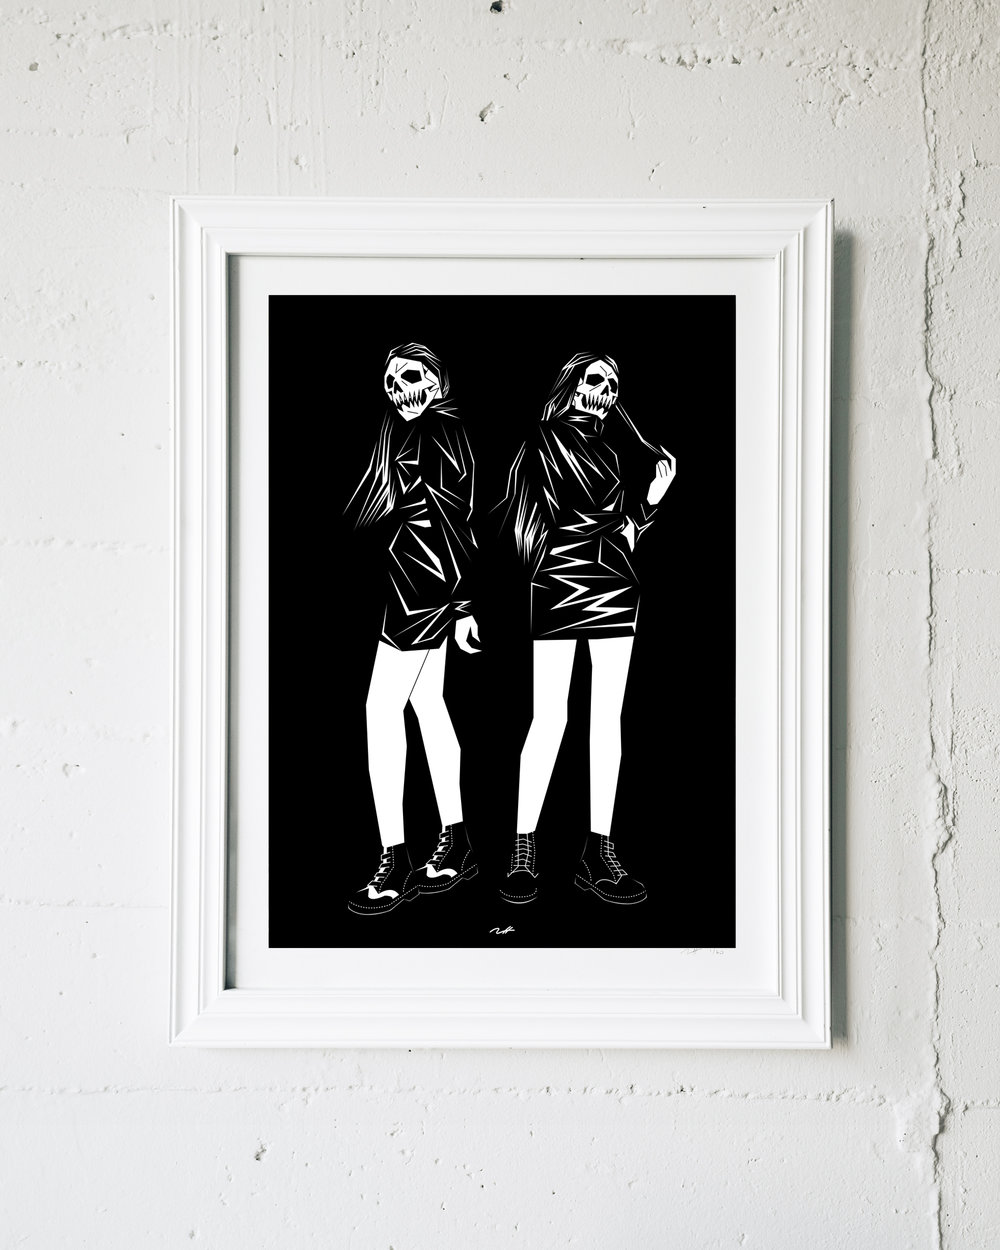 Tommii Lim - Models_Screenprints_hung_igfull.jpg